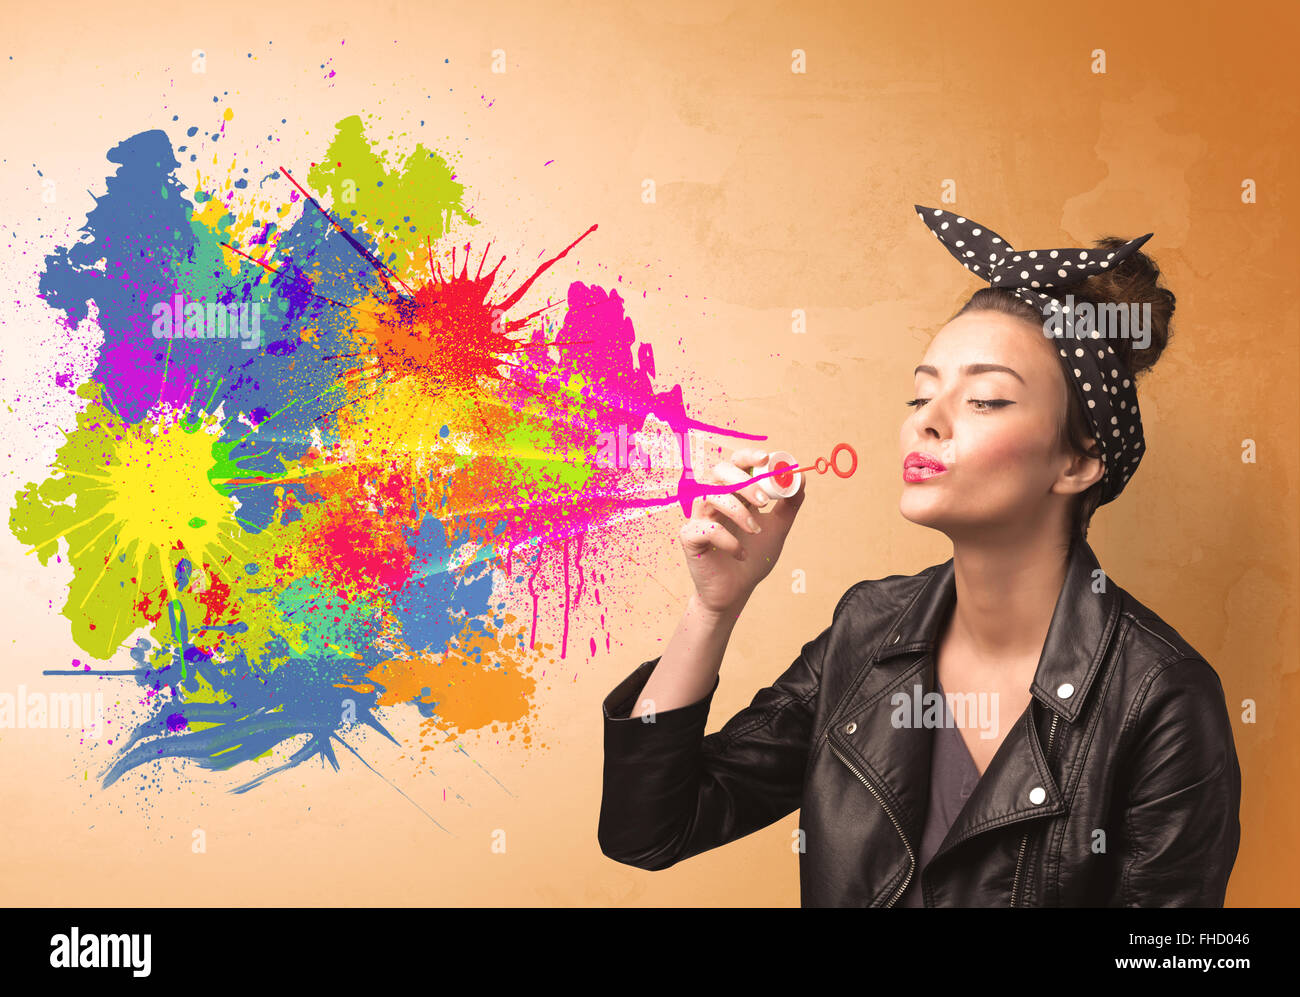 Cute girl blowing colorful splash graffiti - Stock Image